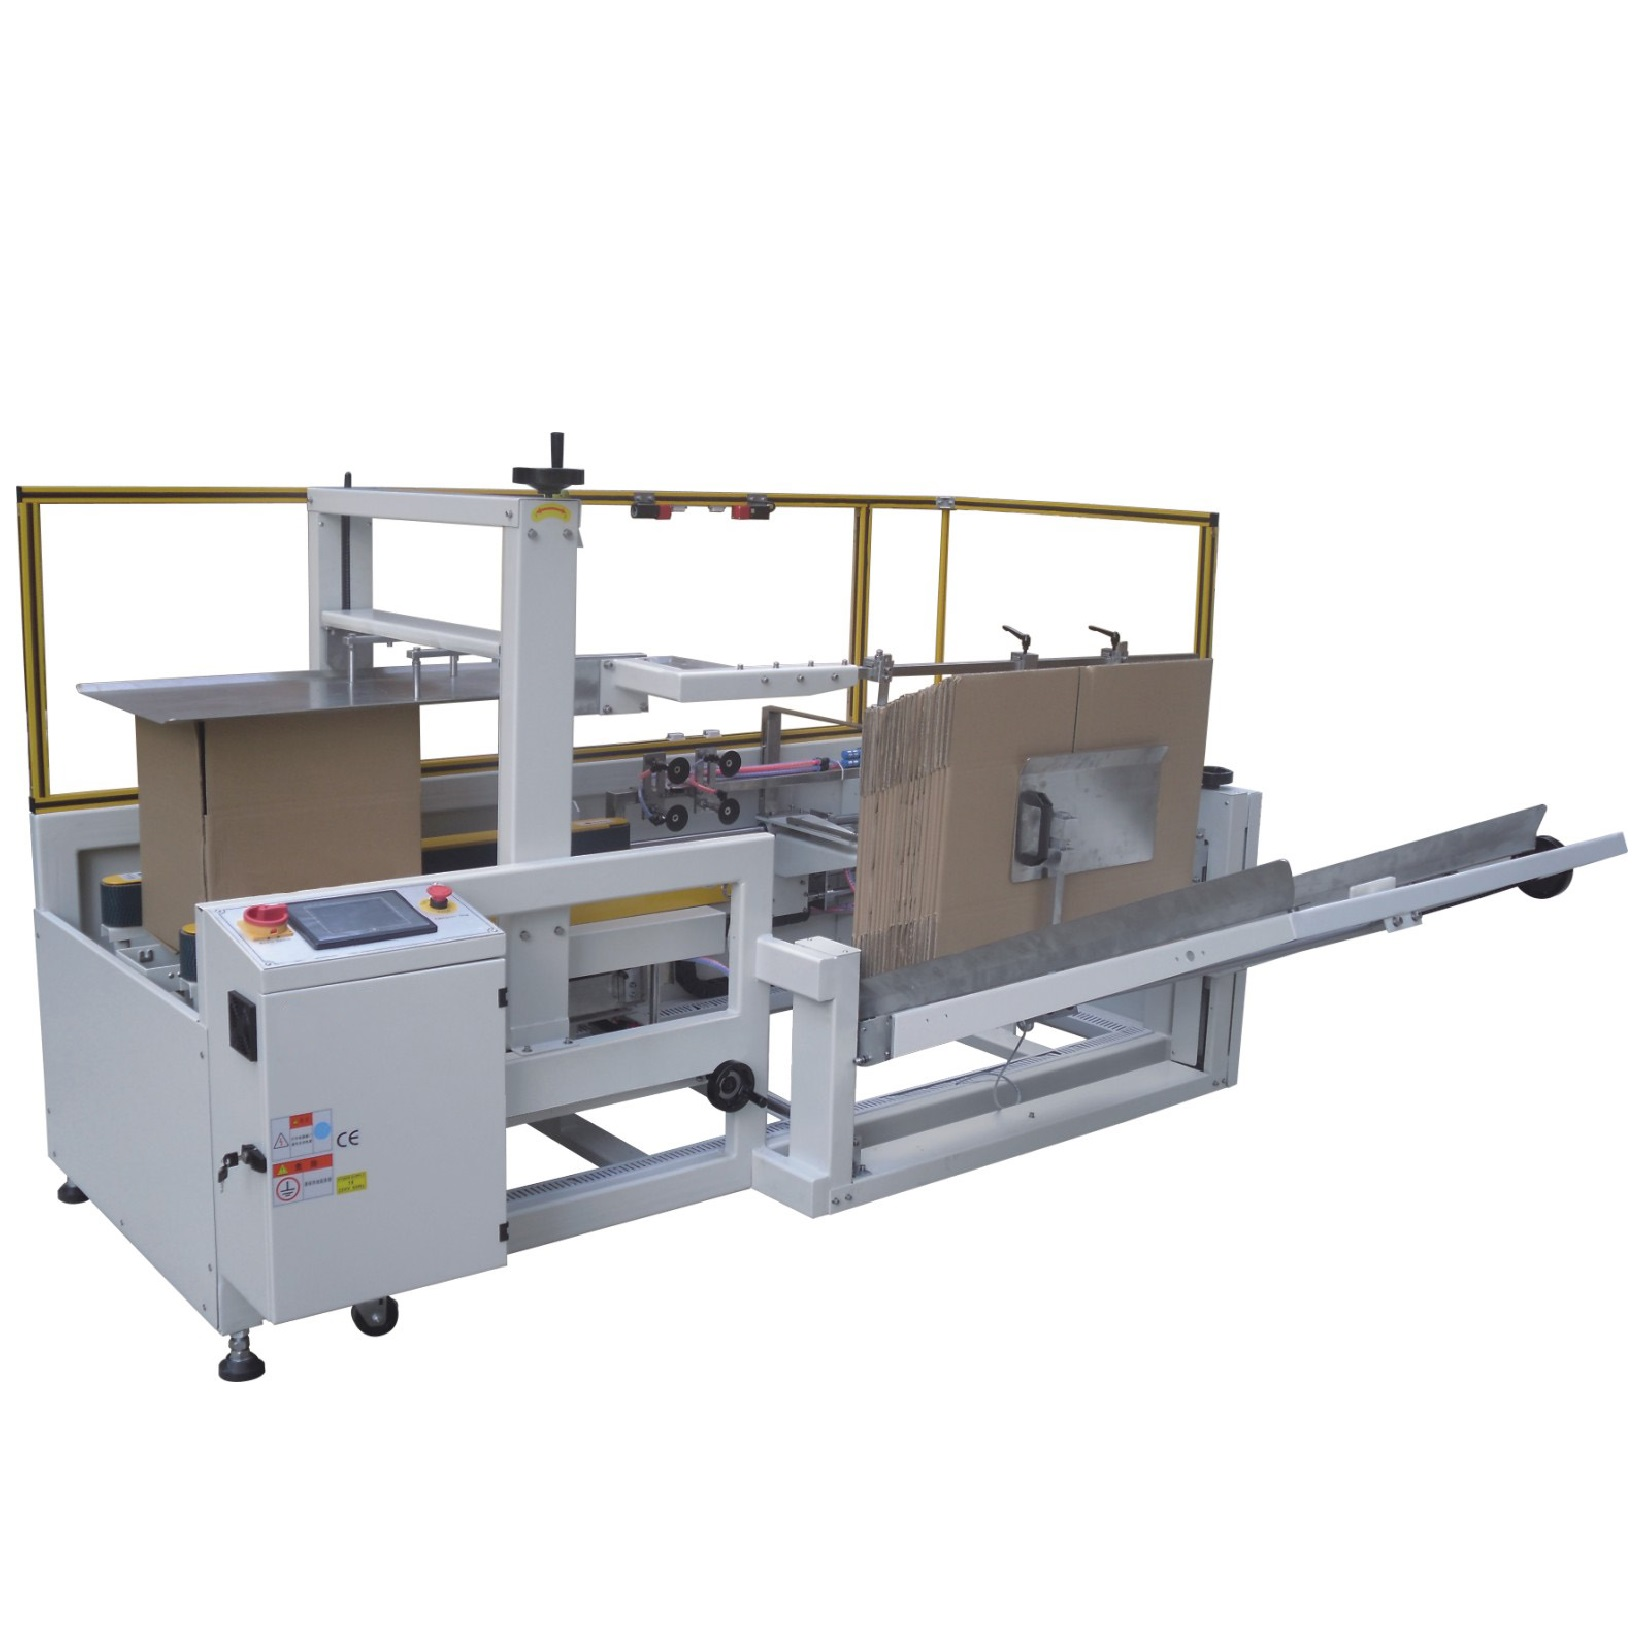 Automatic carton forming and bottom sealing machine